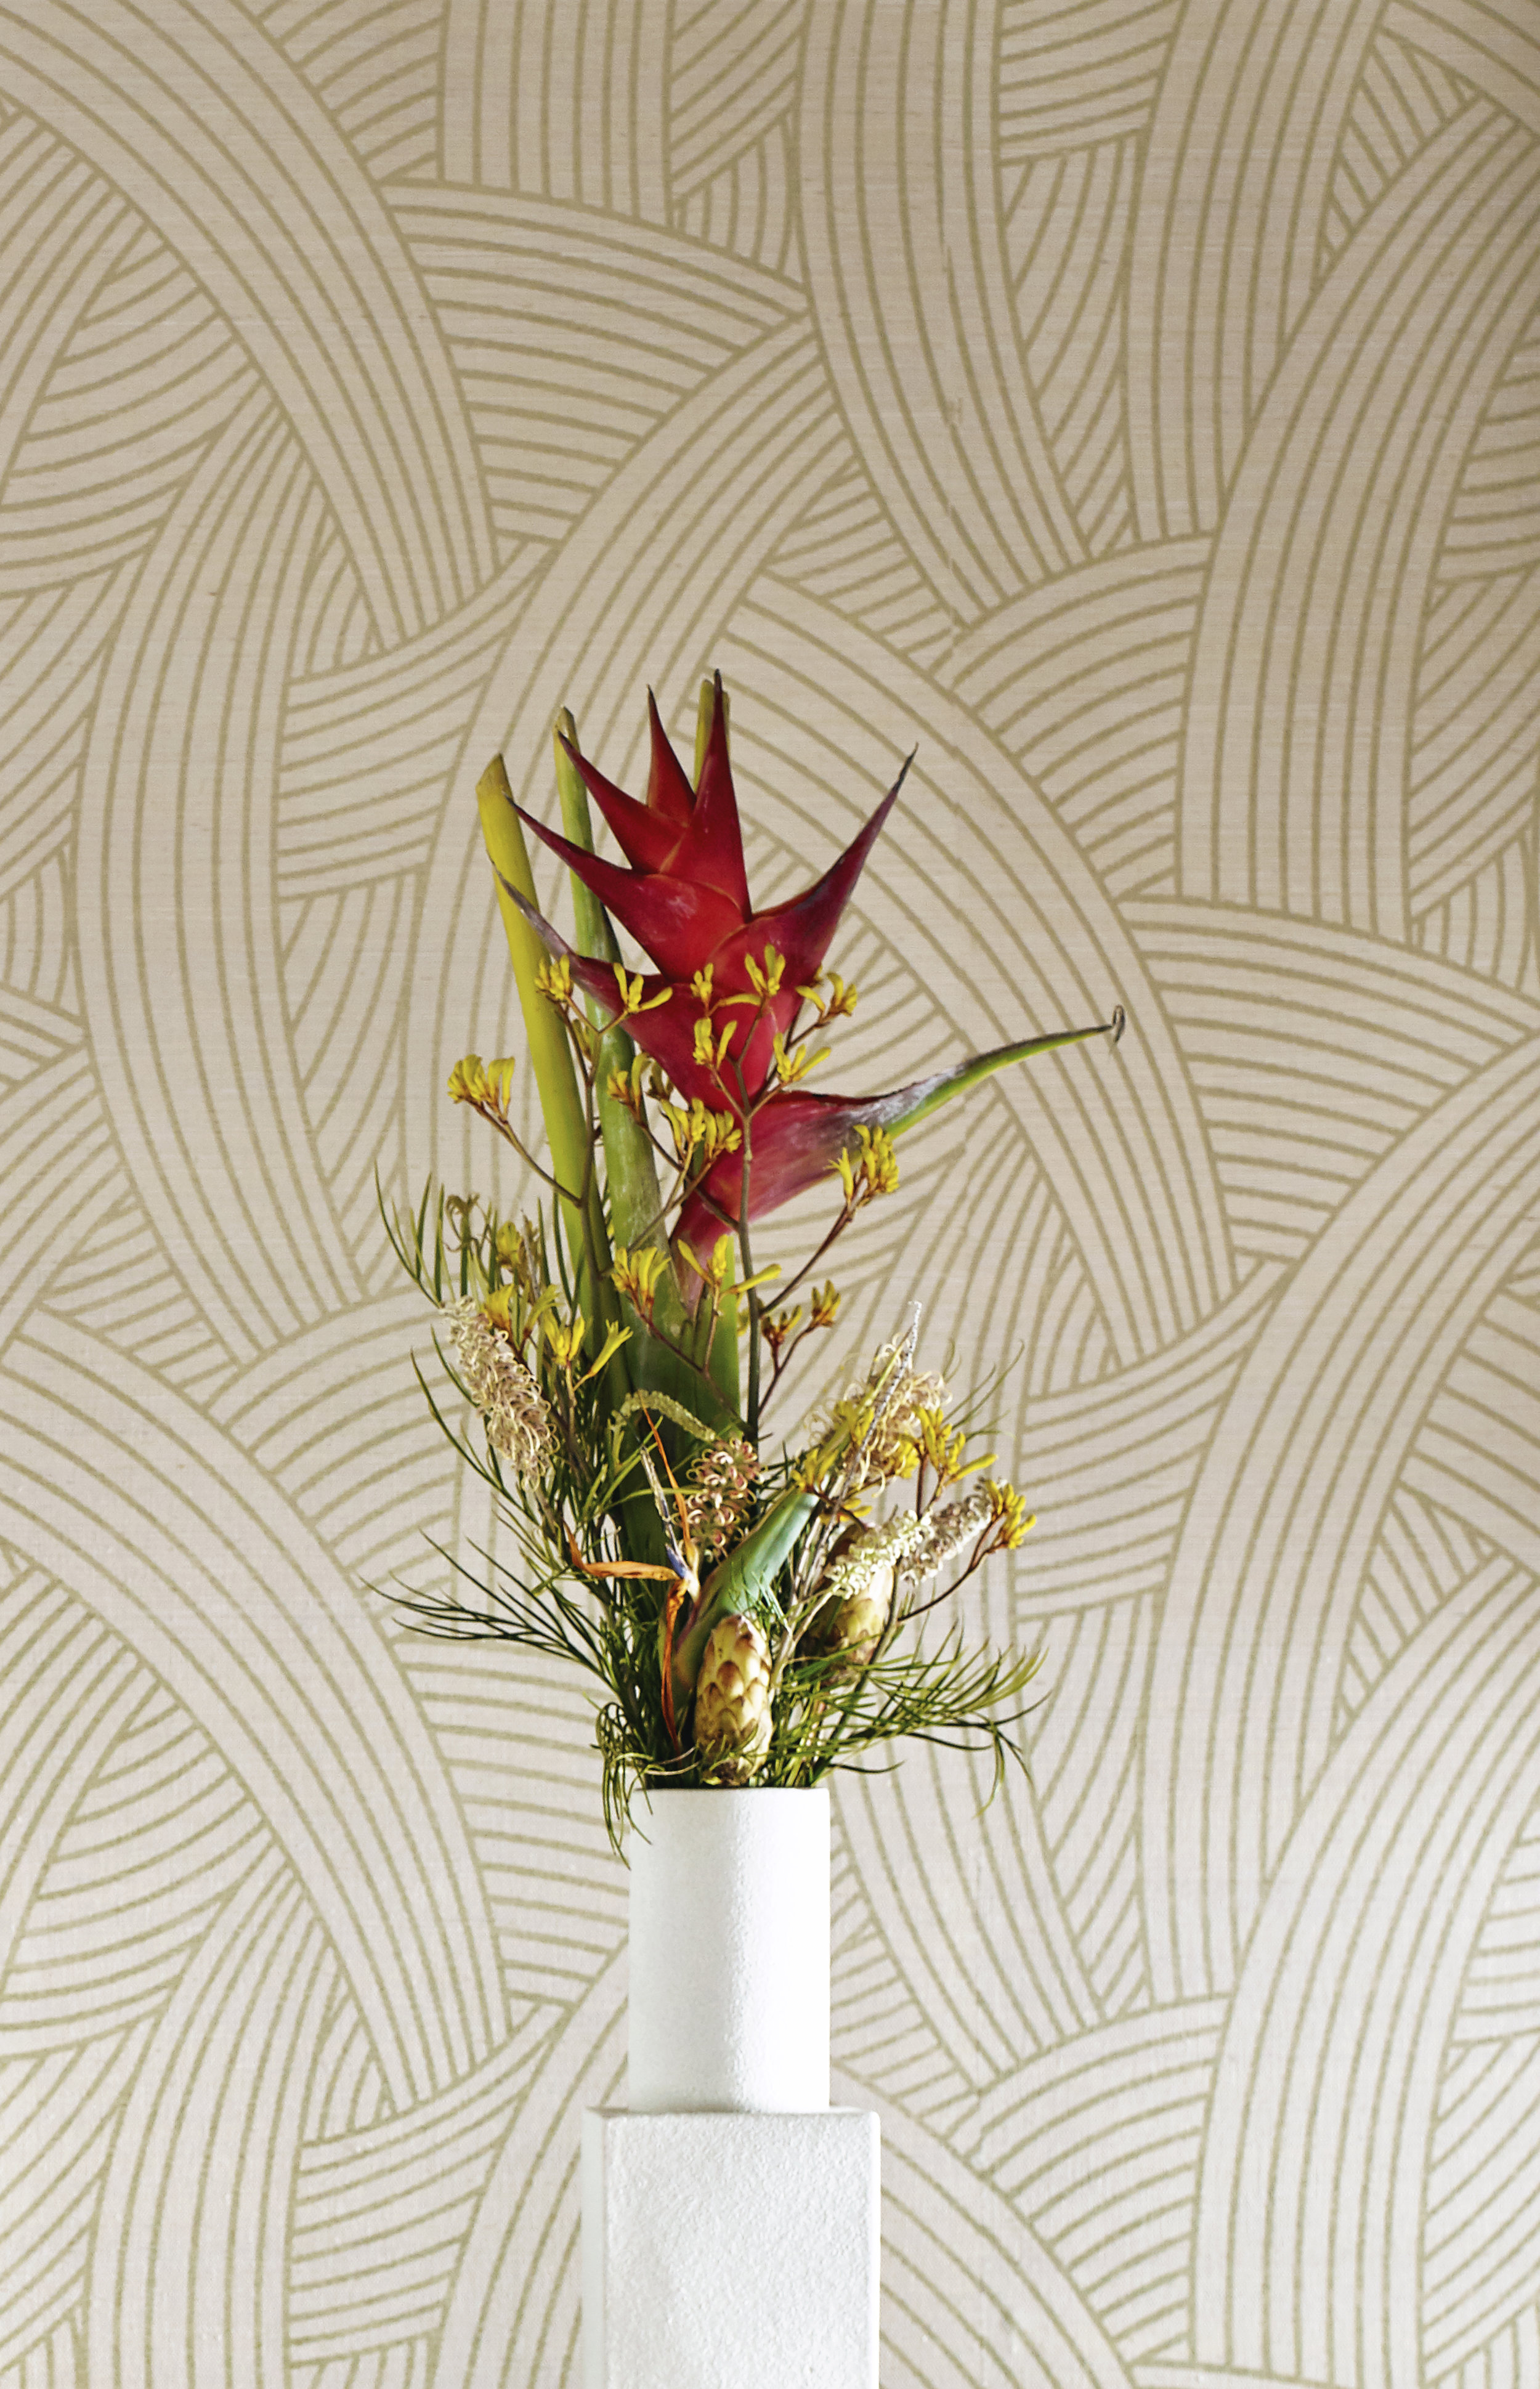 textile design: creative direction in partnership with Tristan Butterfield. Design and fabrication by Albert sardelli.